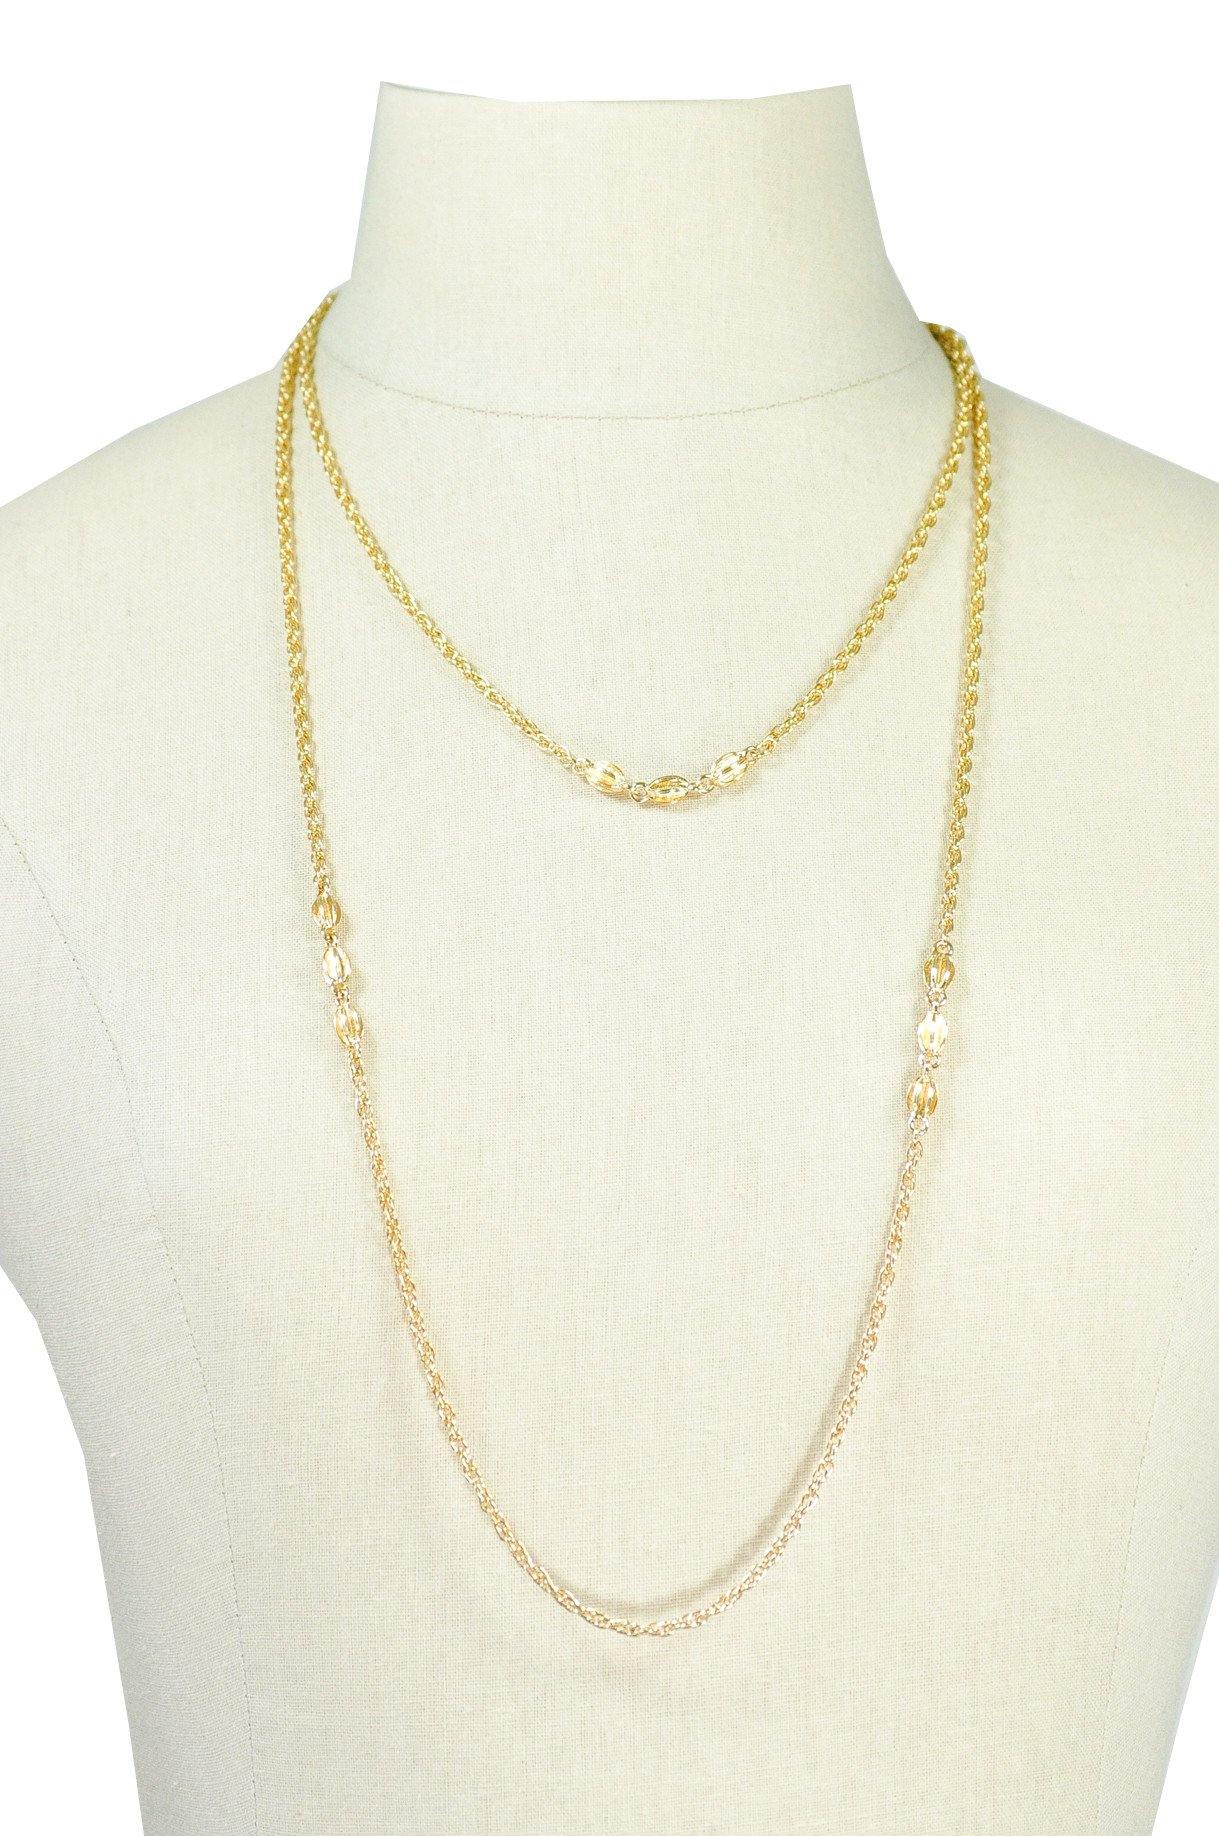 80's__Monet__Gold Layering Necklace